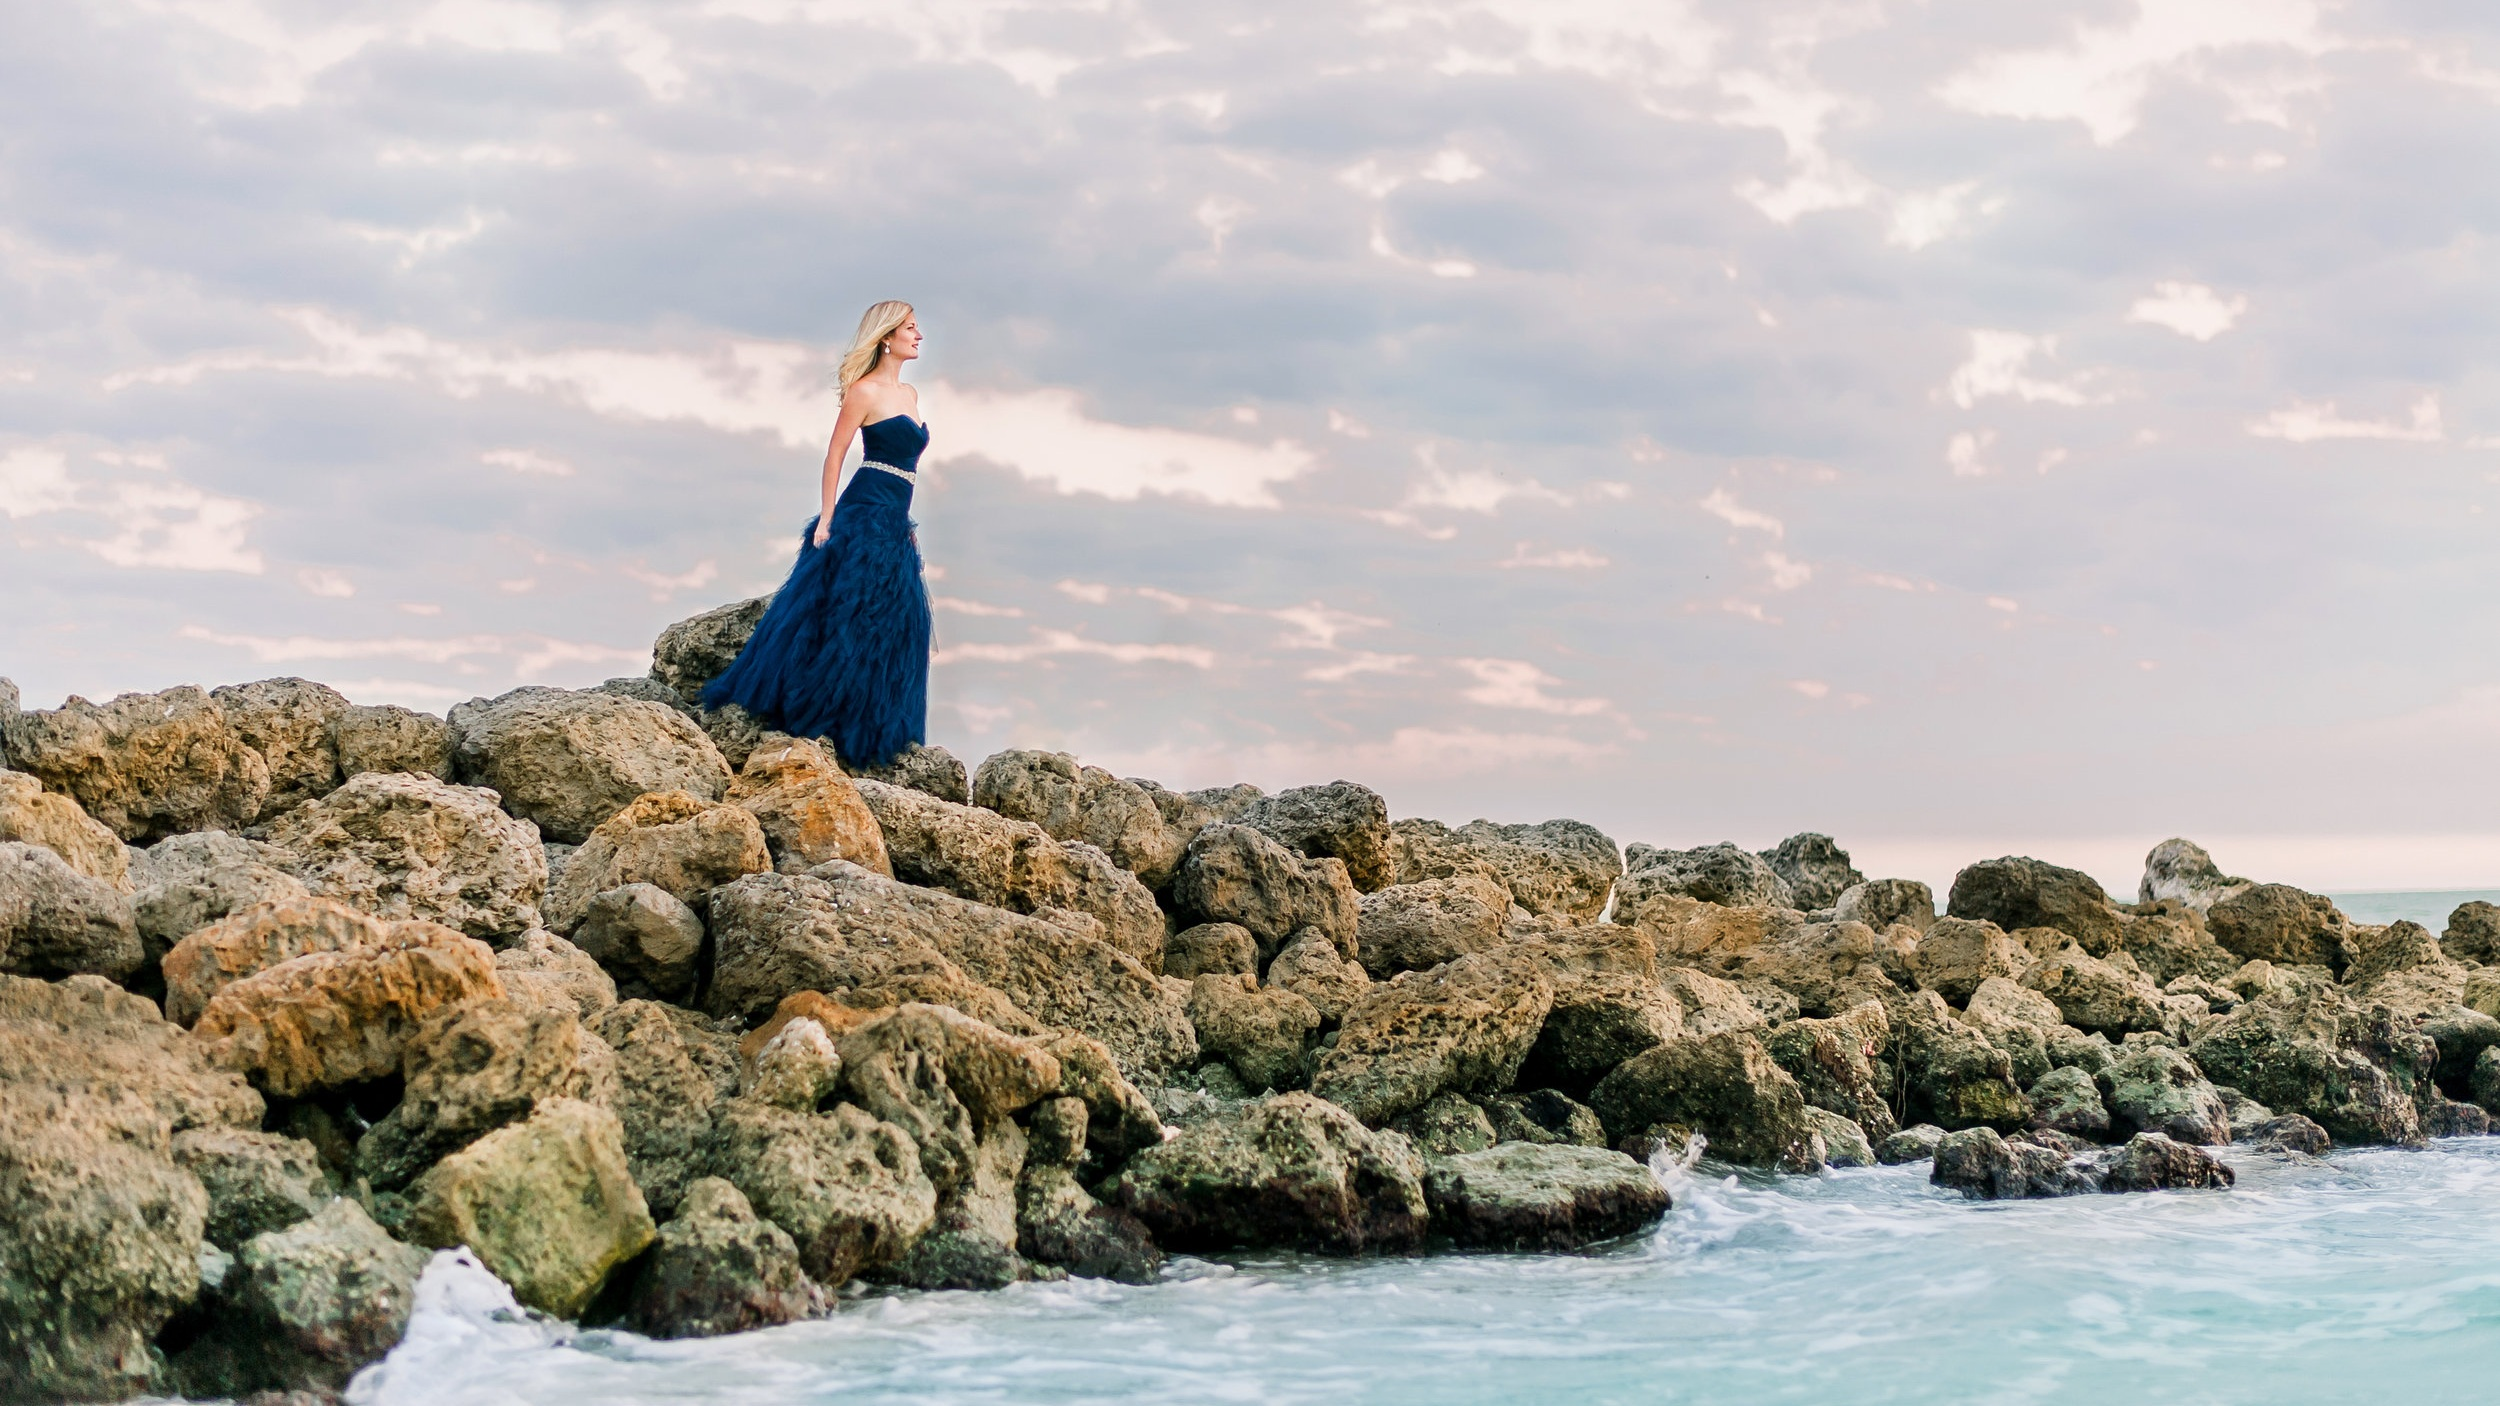 Beyond the Sea - A journey through Heather's life as a performer, traveling around the world, and finding love along the way. Heather weaves together the music from Broadway, Opera, and Pop to tell her personal story.